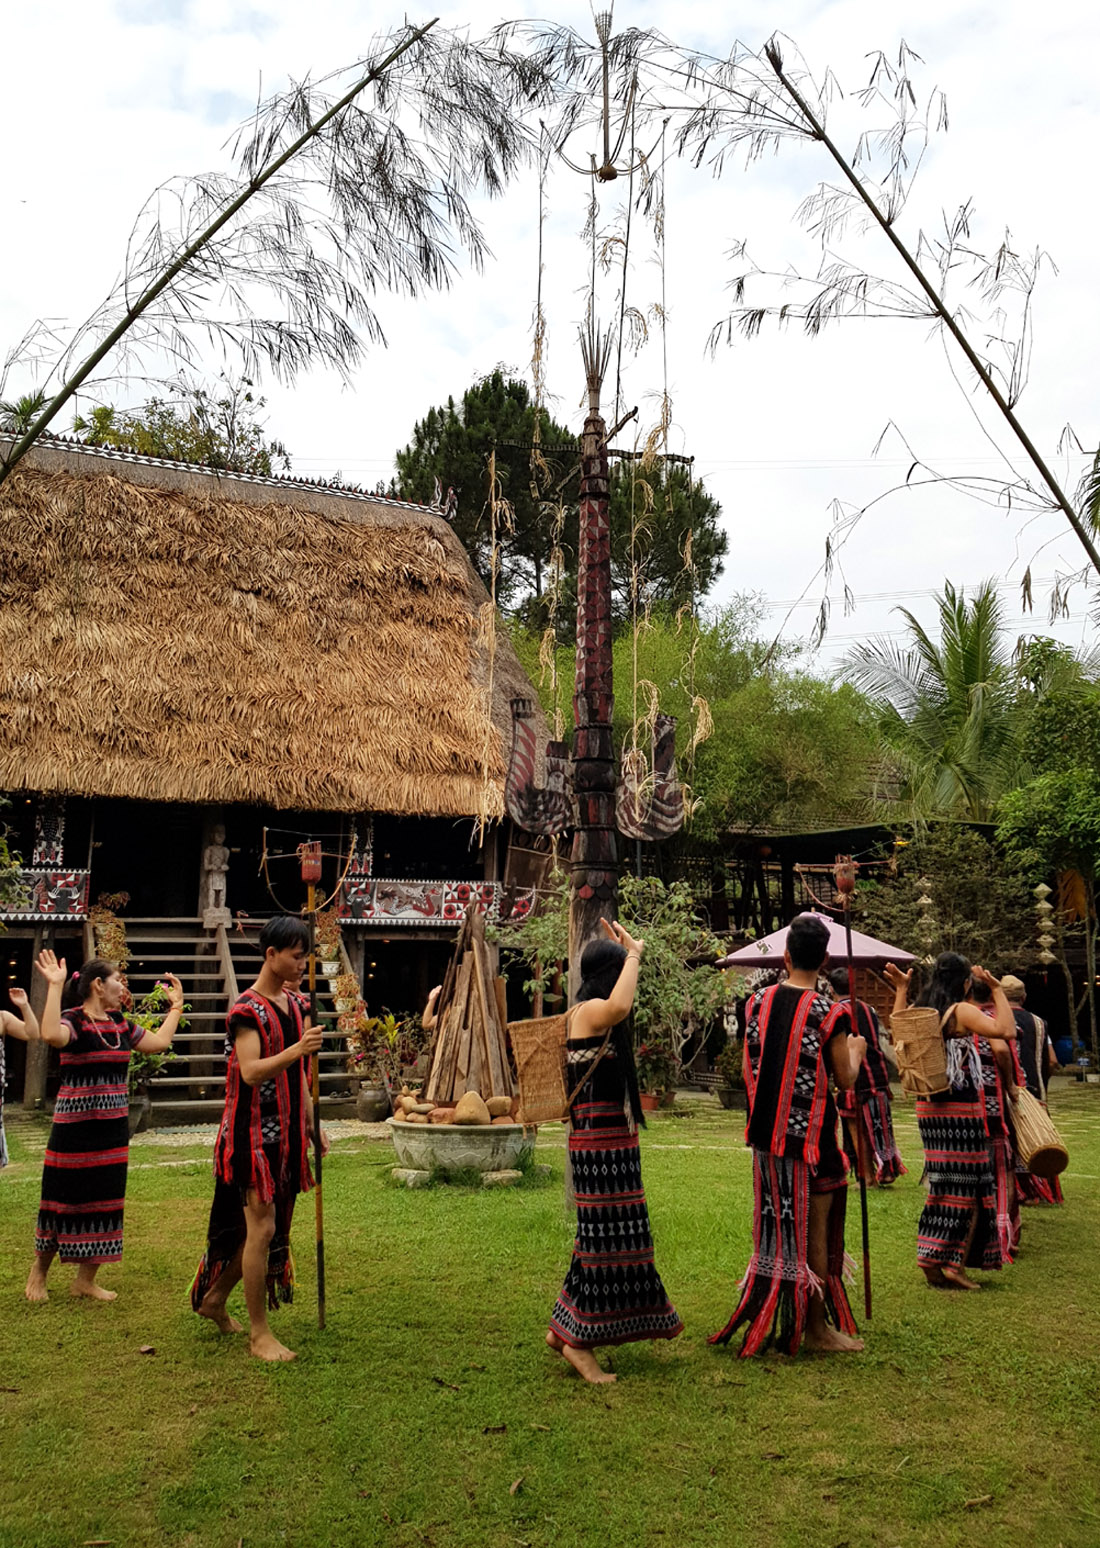 Co Tu ethnic artisans are invited to perform Zèng weaving, and gongs, etc., at the traditional Guol house.